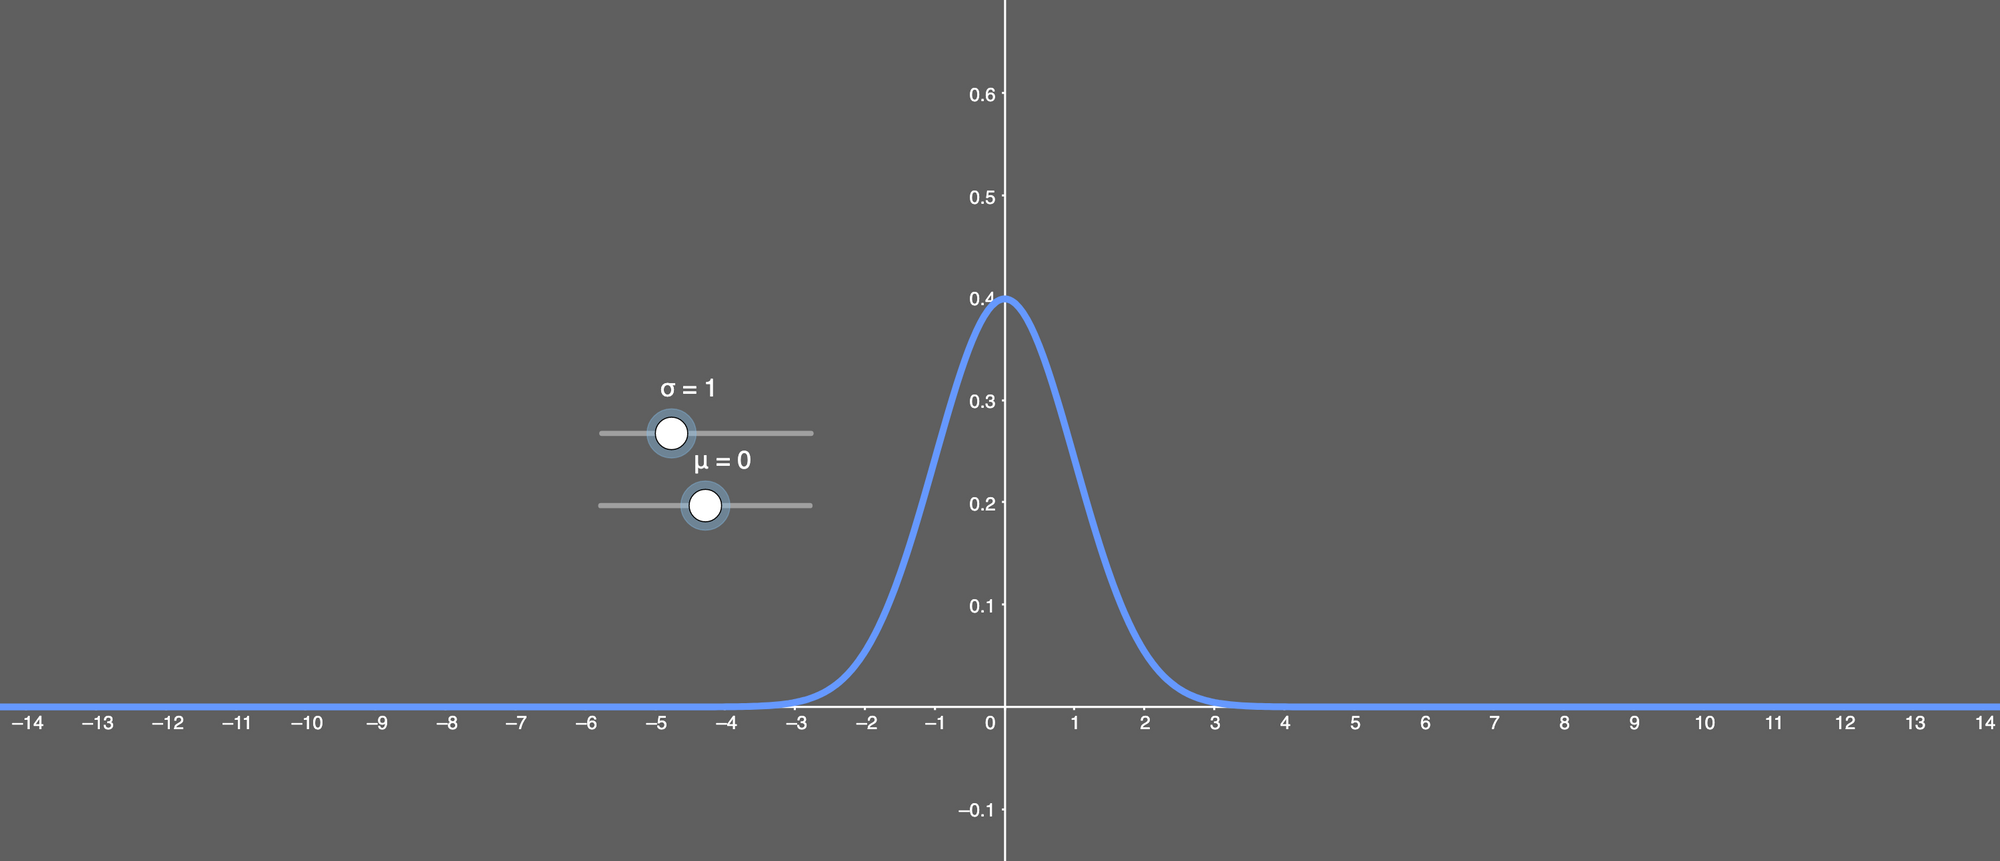 an image displaying what a normal distribution looks like when the standard deviation is 1 and the mean is 0